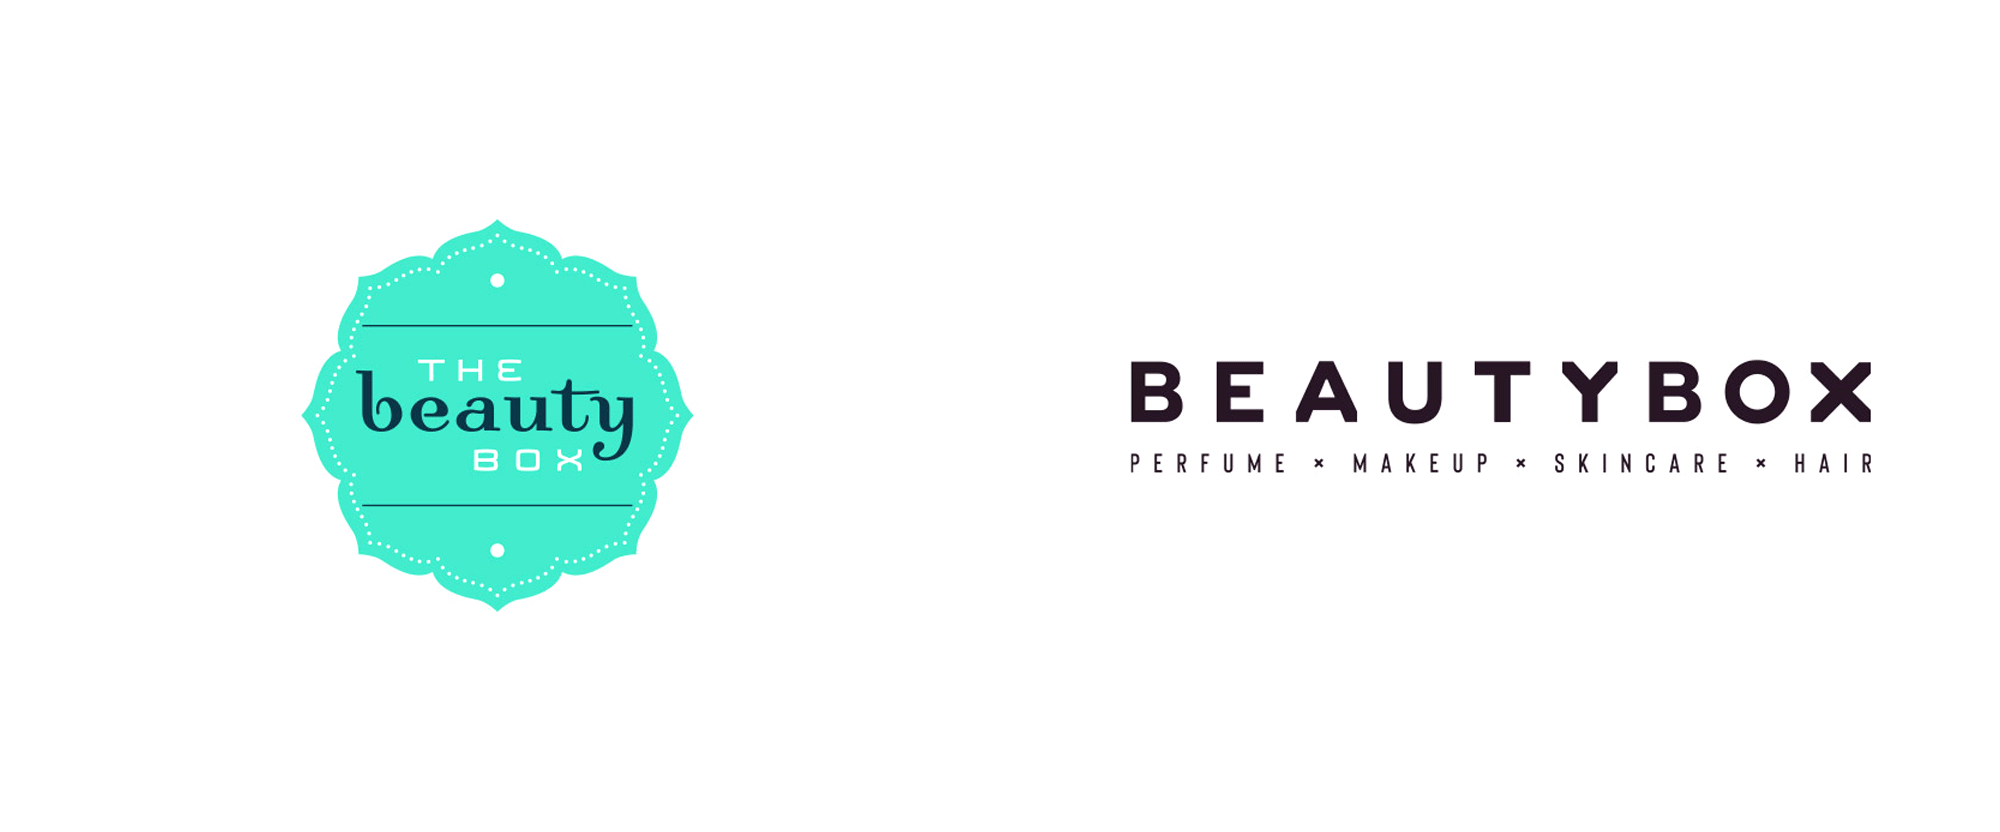 New Logo, Identity, and Packaging for Beauty Box by Marcas com Sal